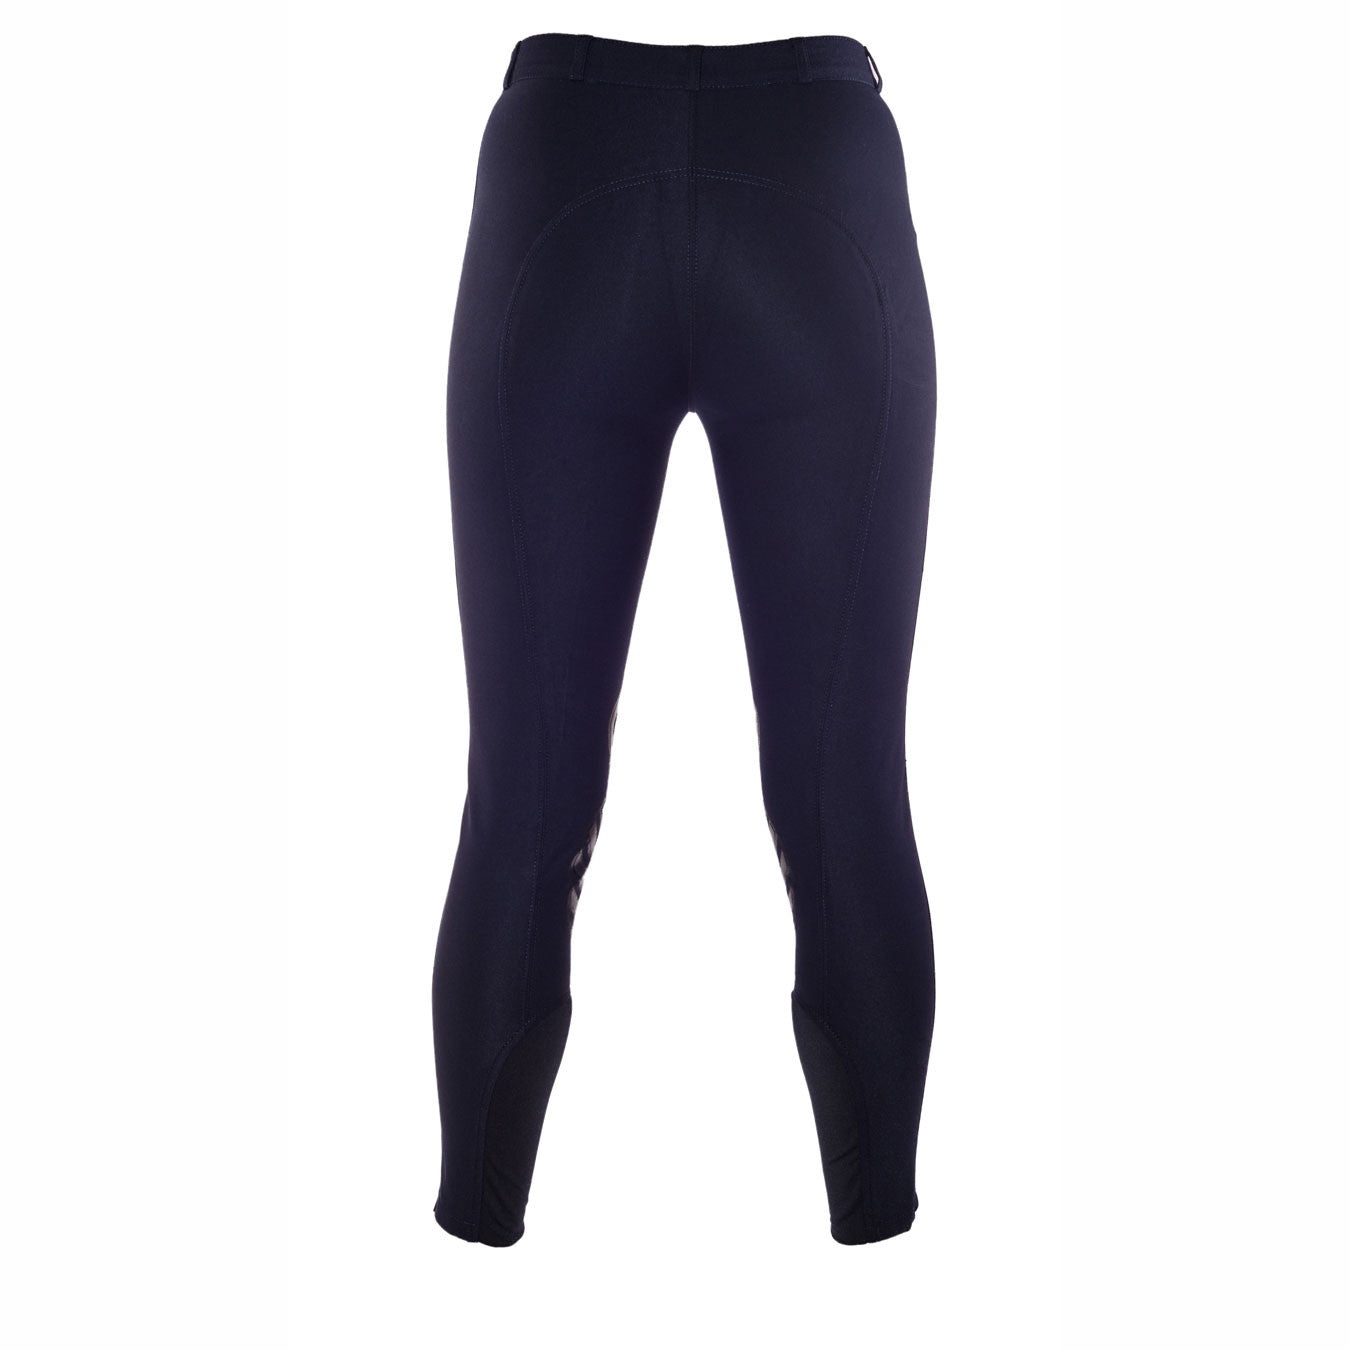 Tagg Jumptech Breeches uk